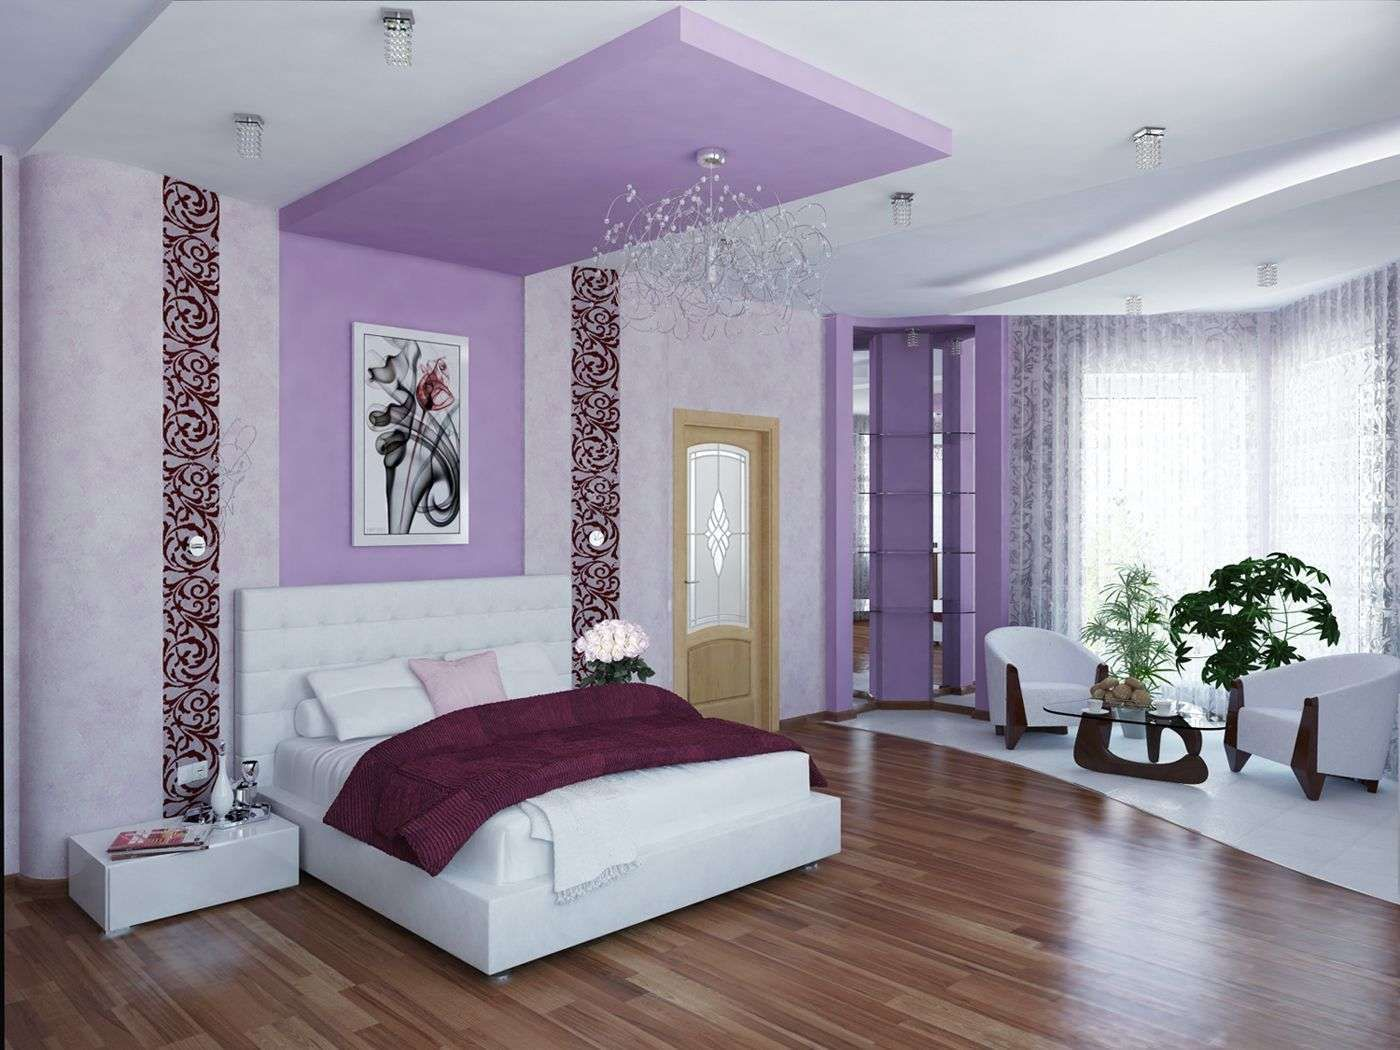 Bedroom Colors 2013 teembedrooms | paint colors for teen bedrooms | hd wallpapers